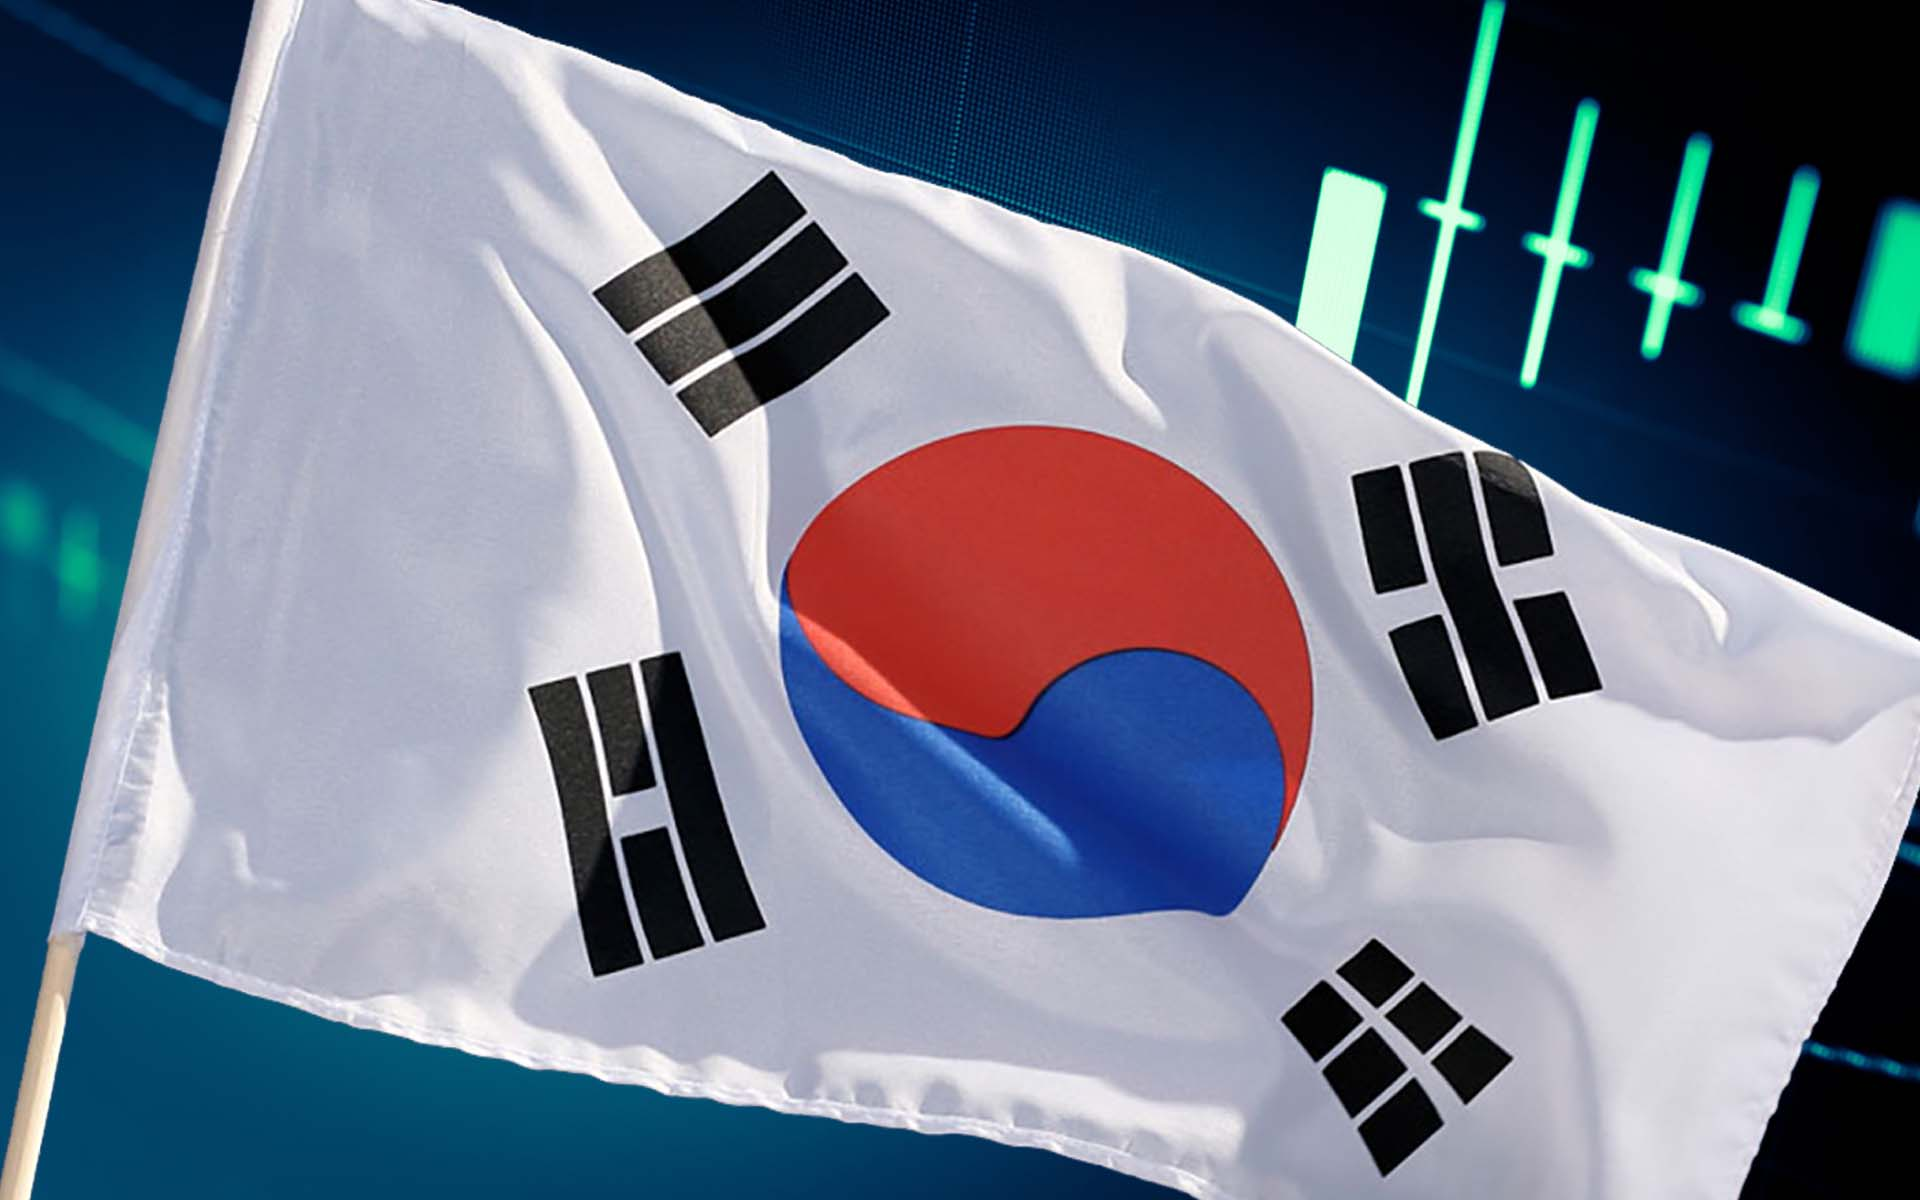 South Korea won't ban crypto trading